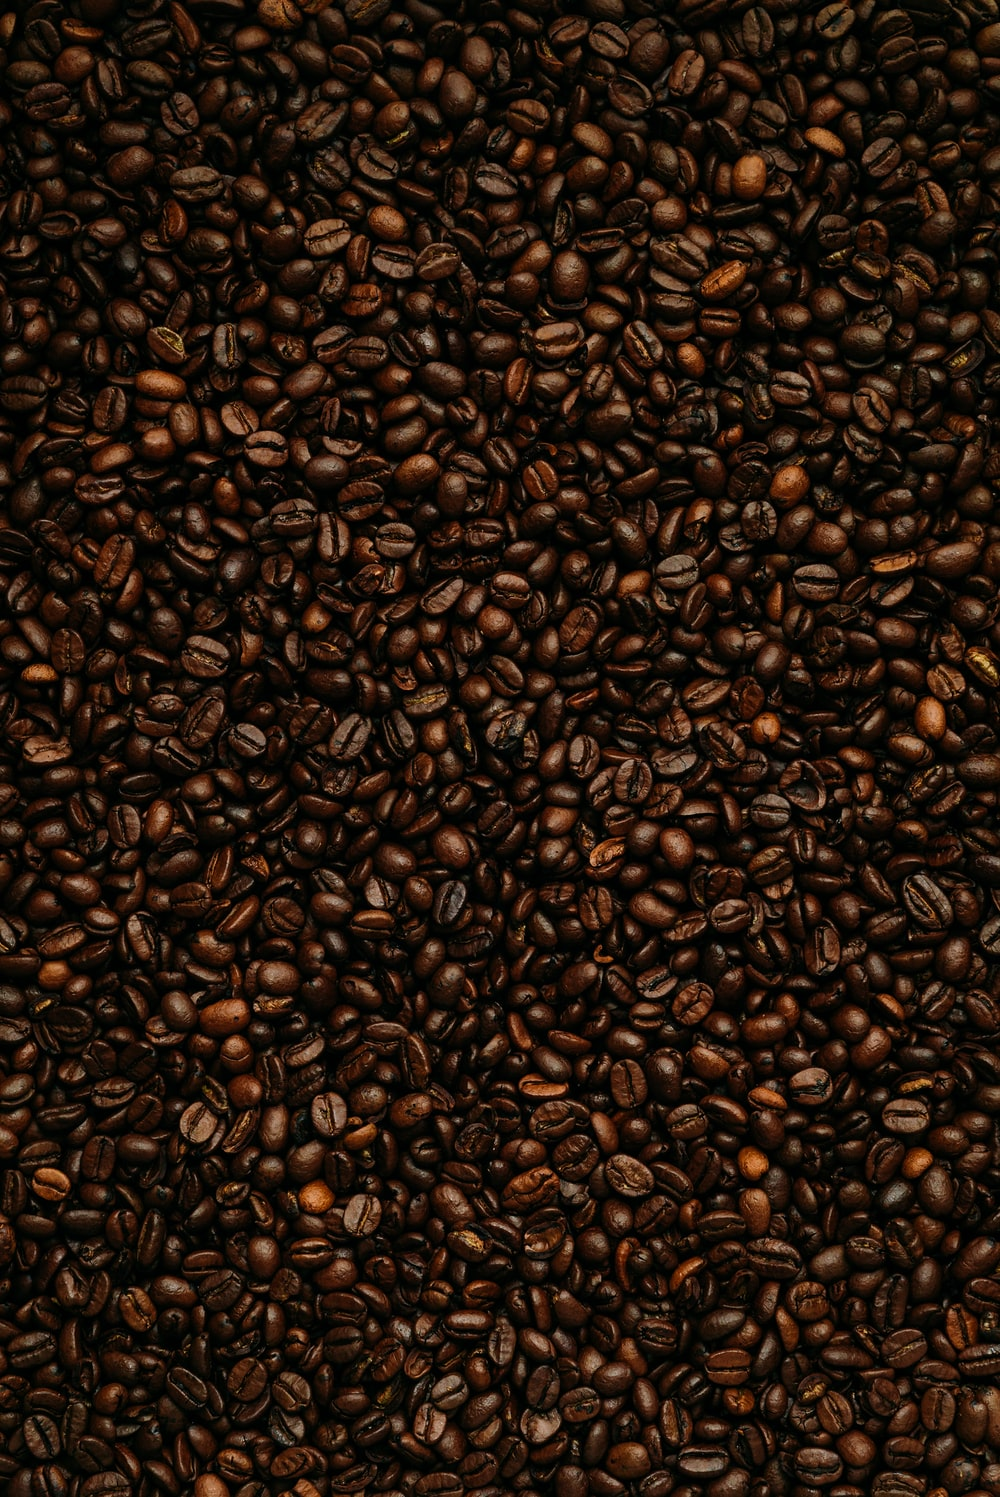 brown and black leopard pattern textile